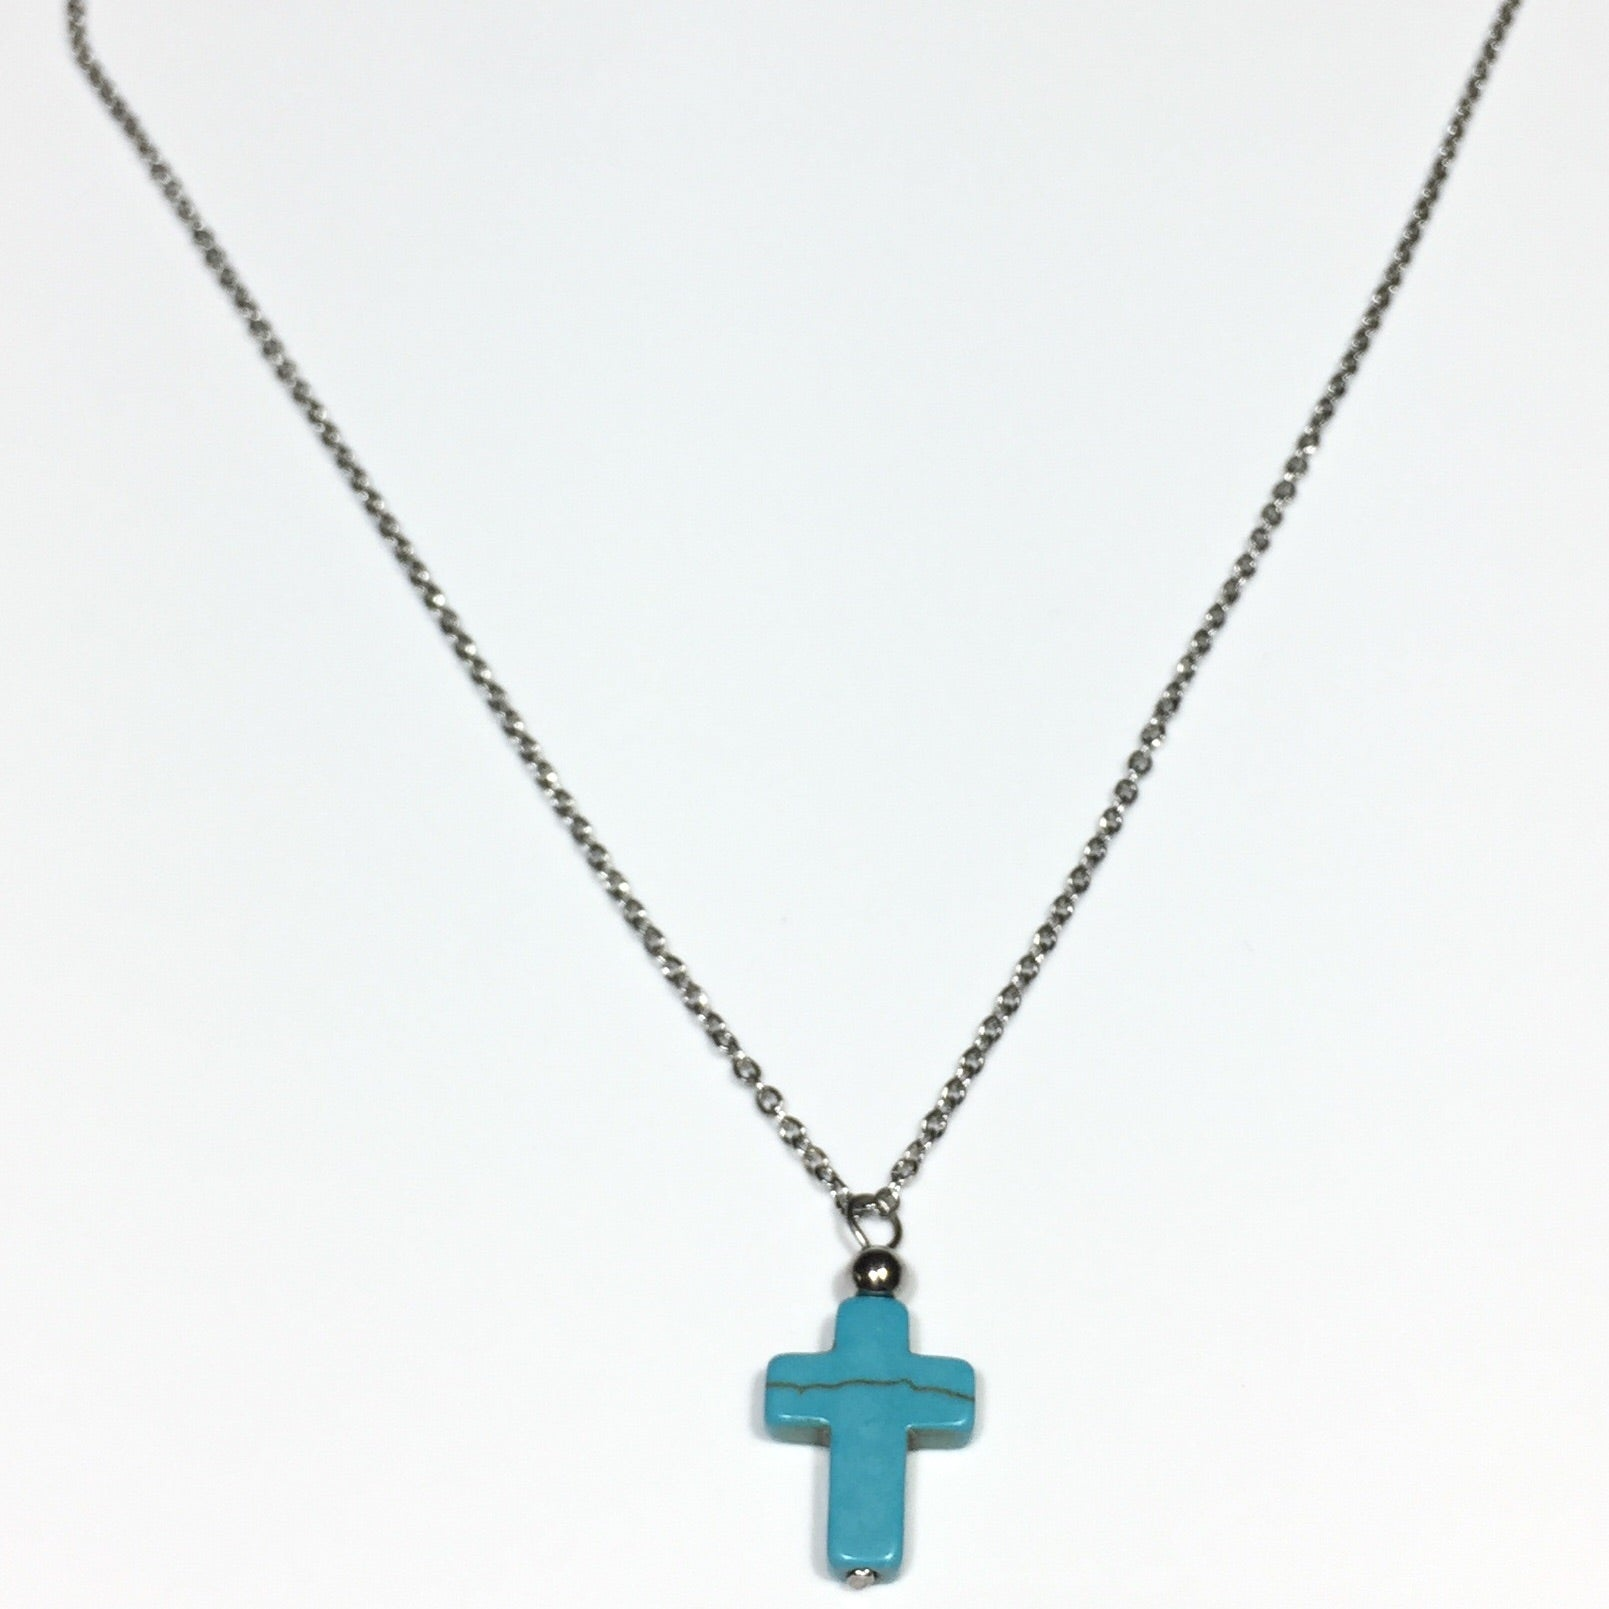 Howlite Cross Stainless Steel Necklace